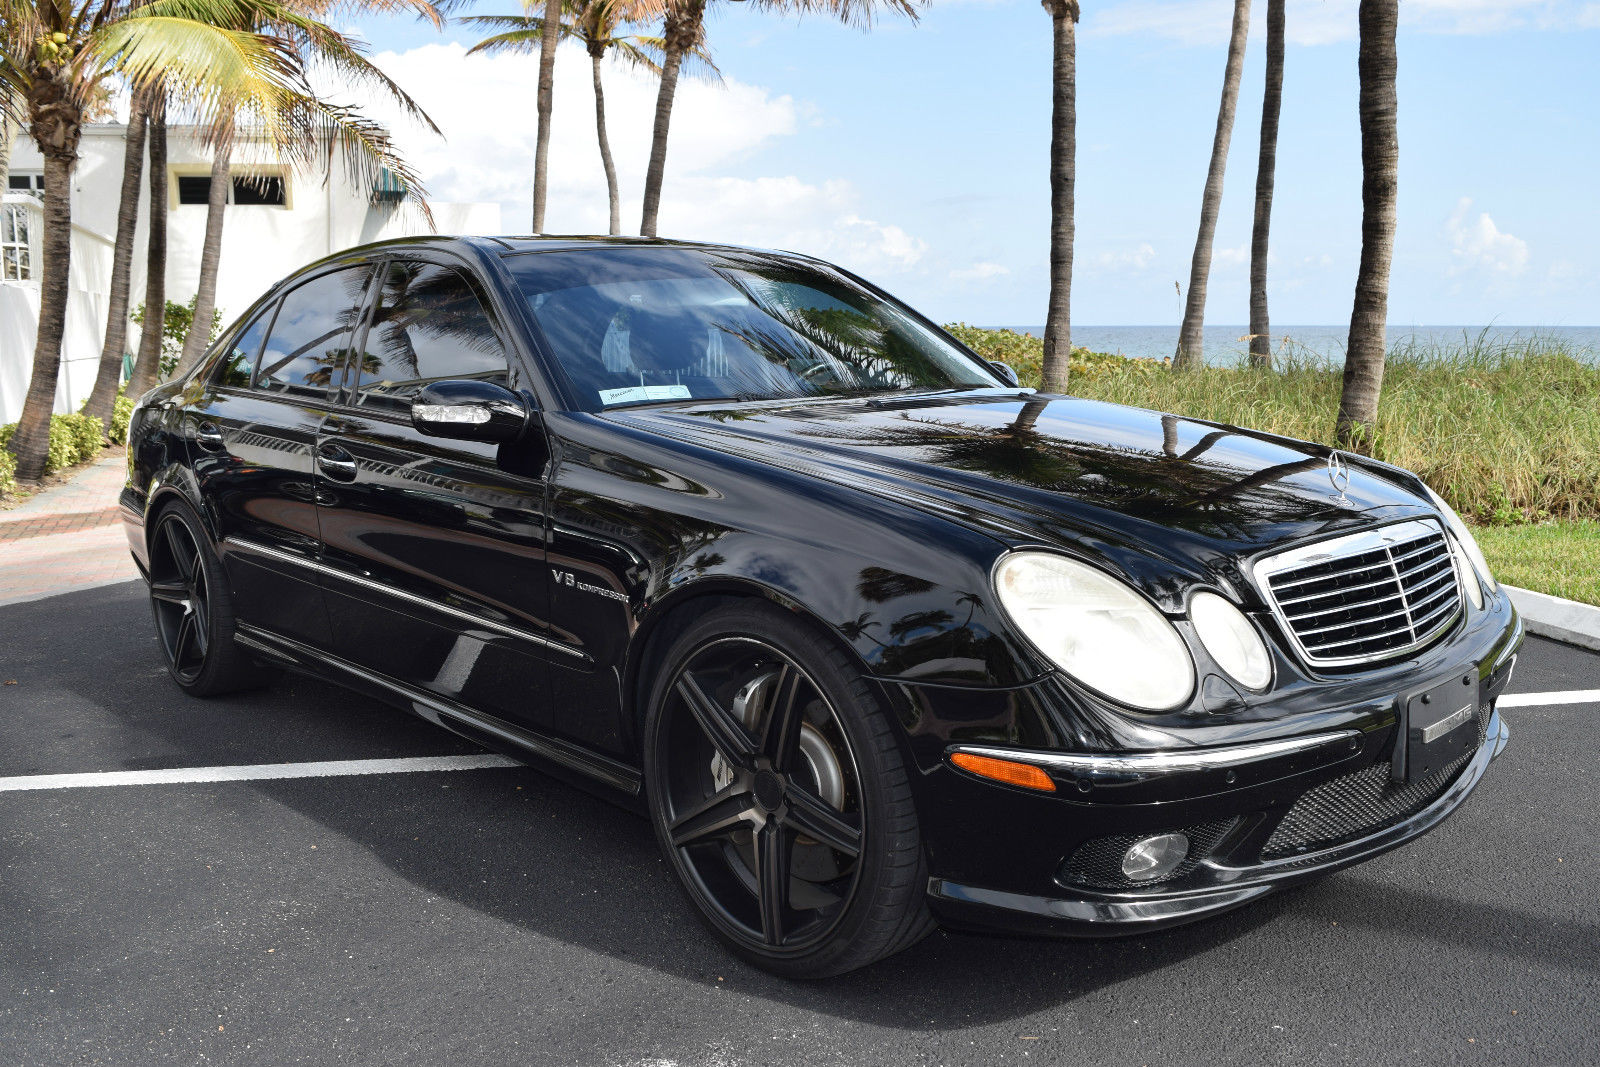 benztuning 2006 mercedes benz w211 e55 amg on 20 niche